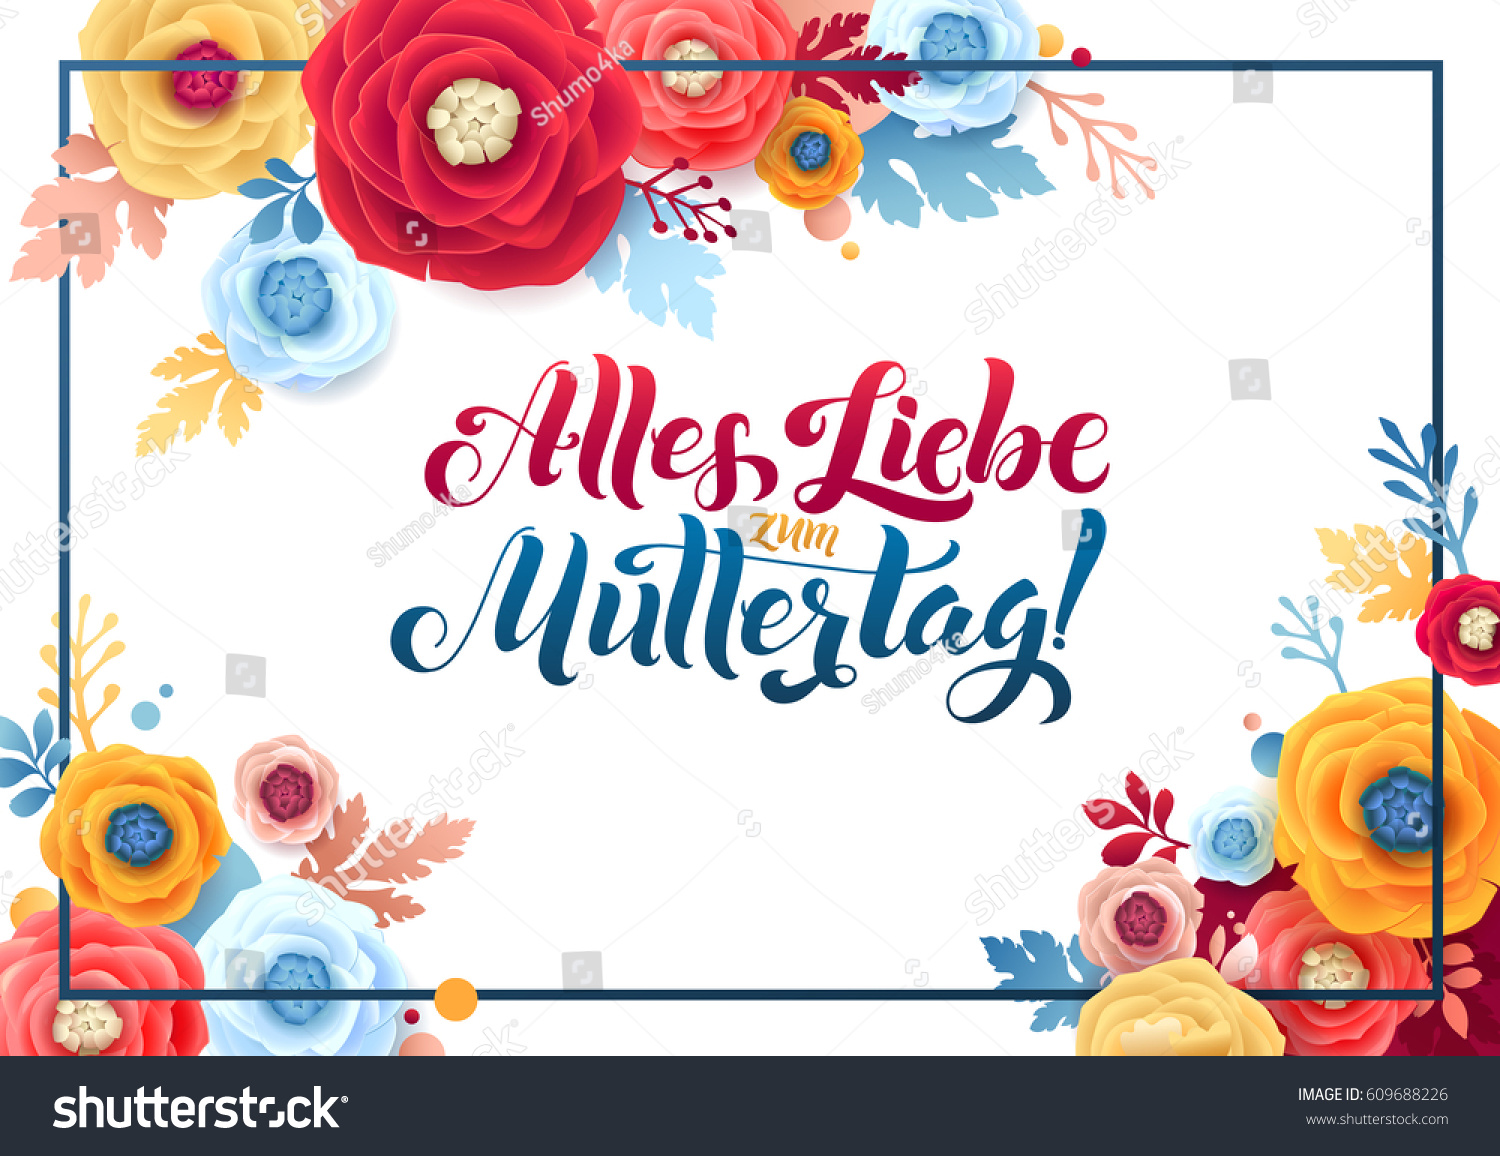 Happy mothers day german text greeting stock vector 609688226 happy mothers day german text greeting card rose floral background kristyandbryce Choice Image